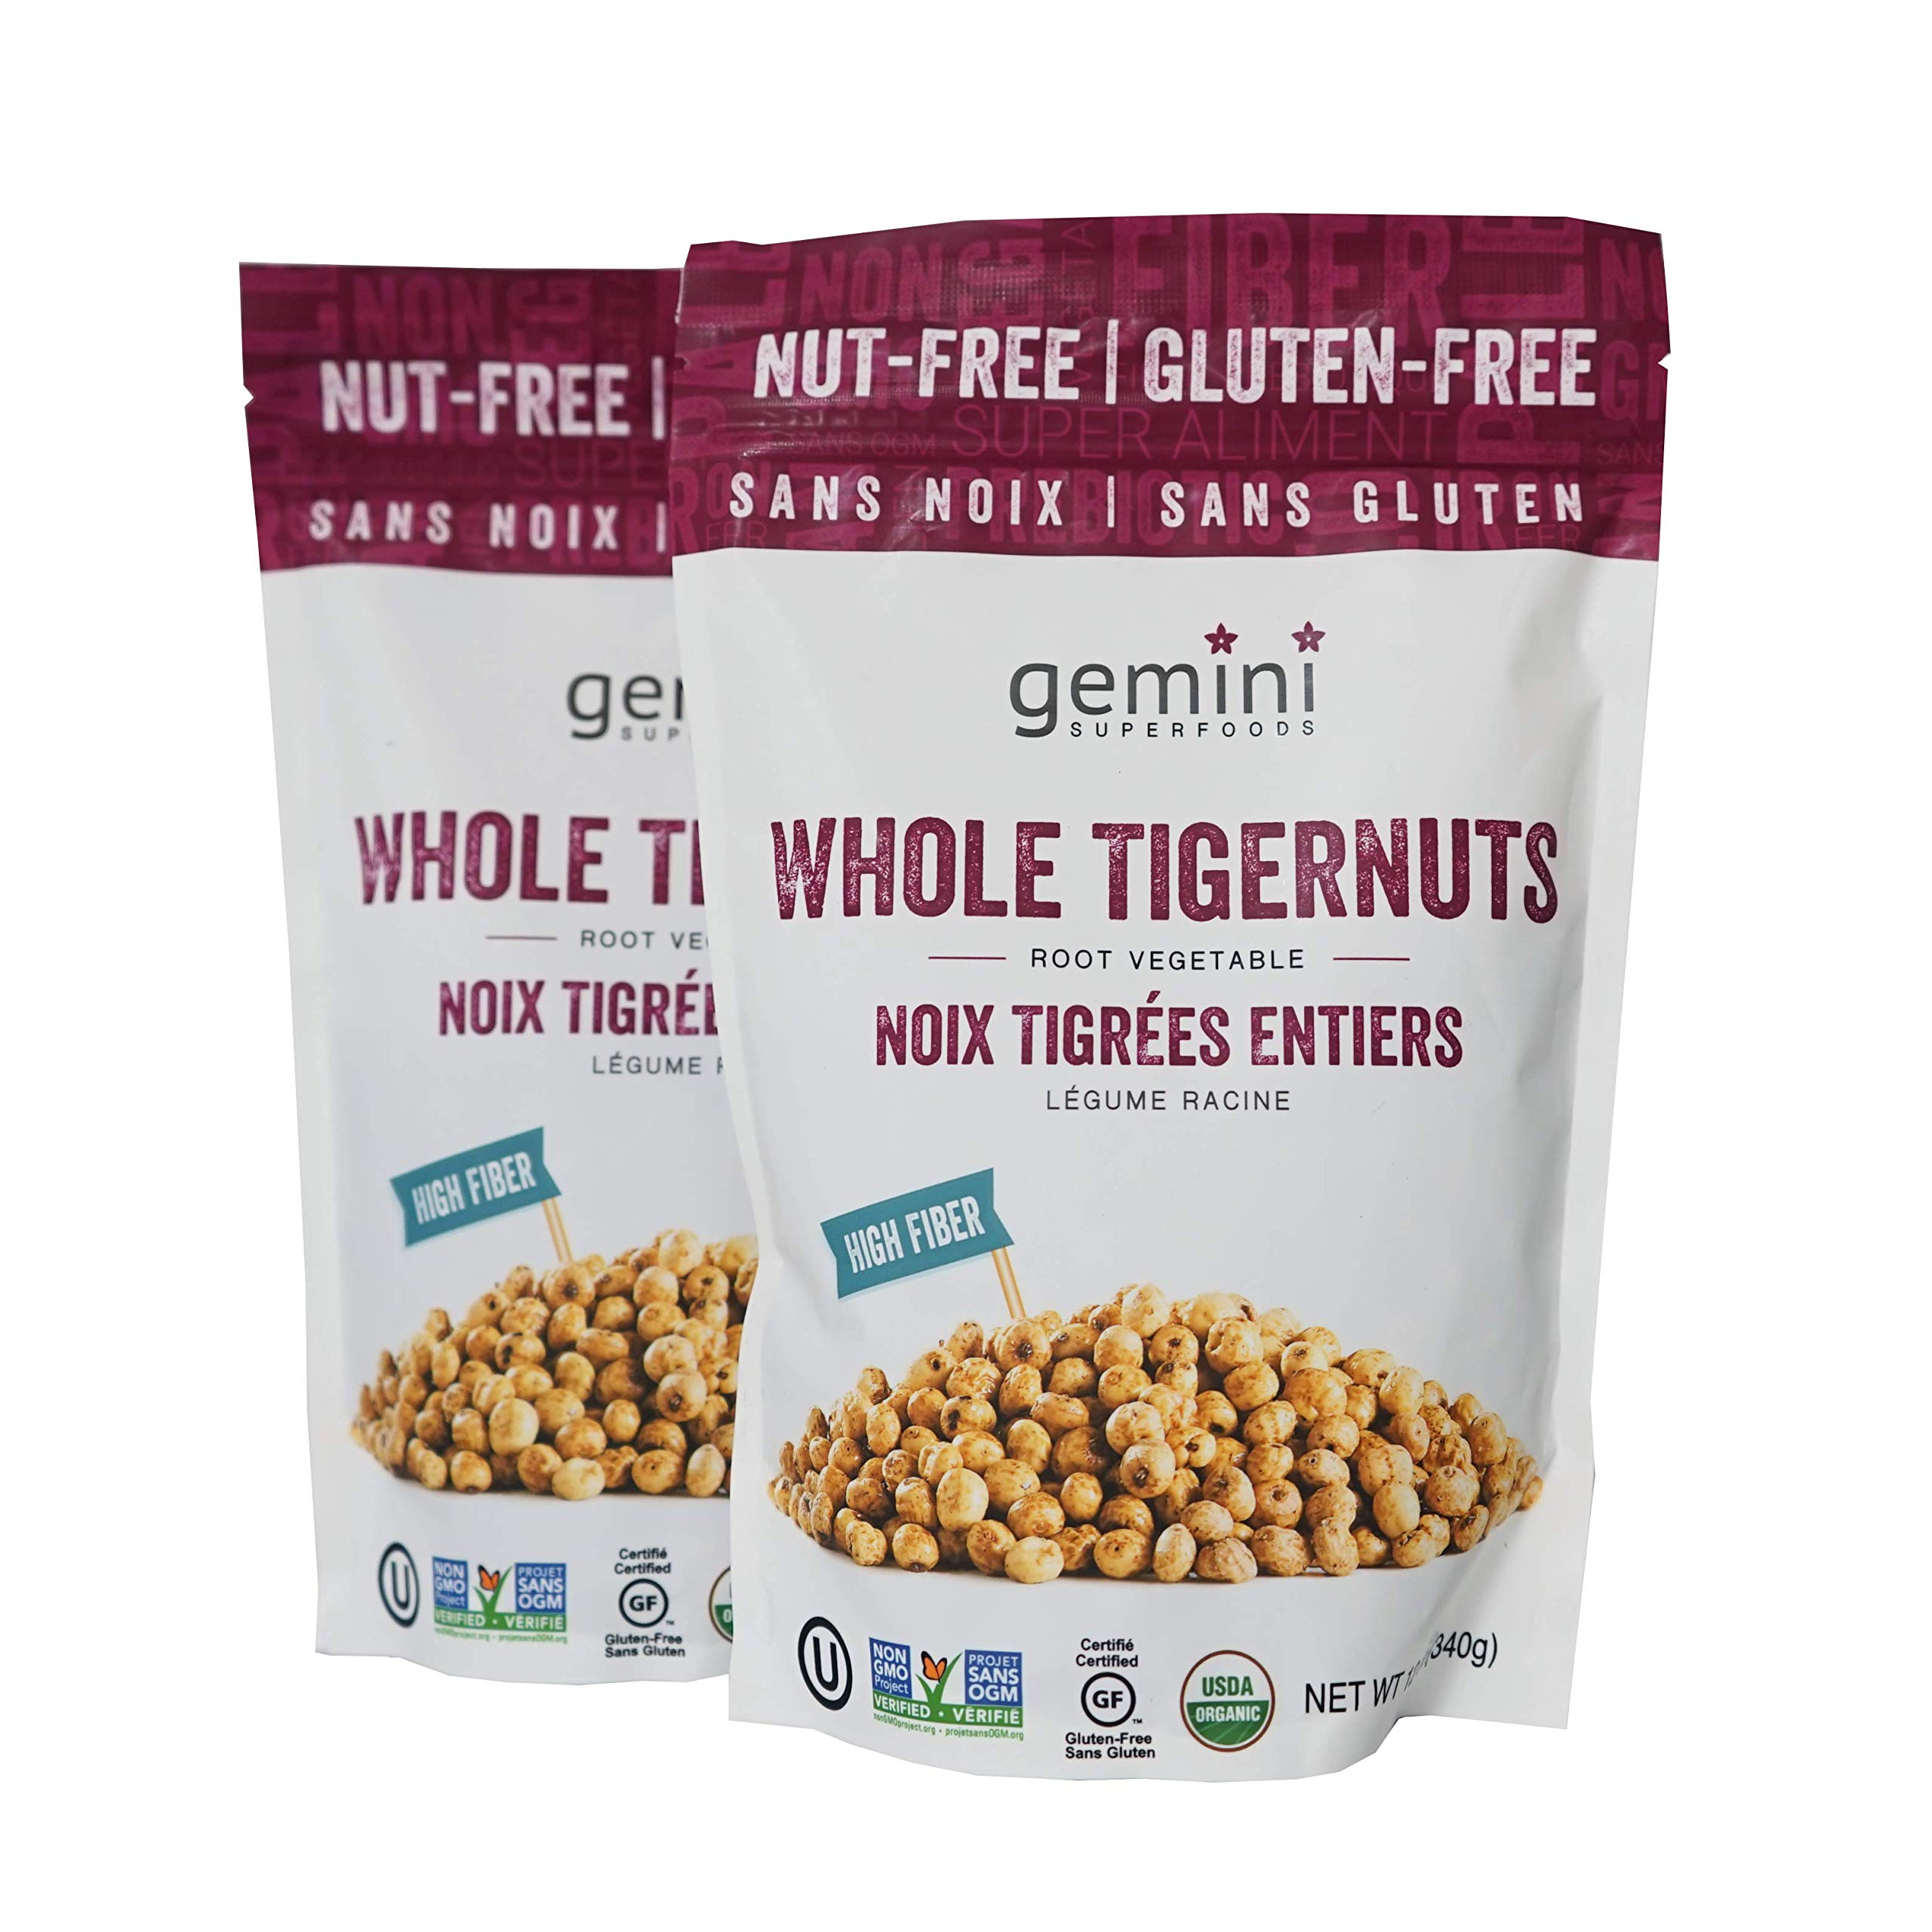 Tigernut – Ready to Eat Dry Tiger Nuts – Low Calorie Gemini Tiger Nuts 12oz (2-Pack) – Vegan, Gluten Free, High Fiber Raw Tiger Nuts – Organic, Nut Free Large Tigernuts for Digestive and Heart Health